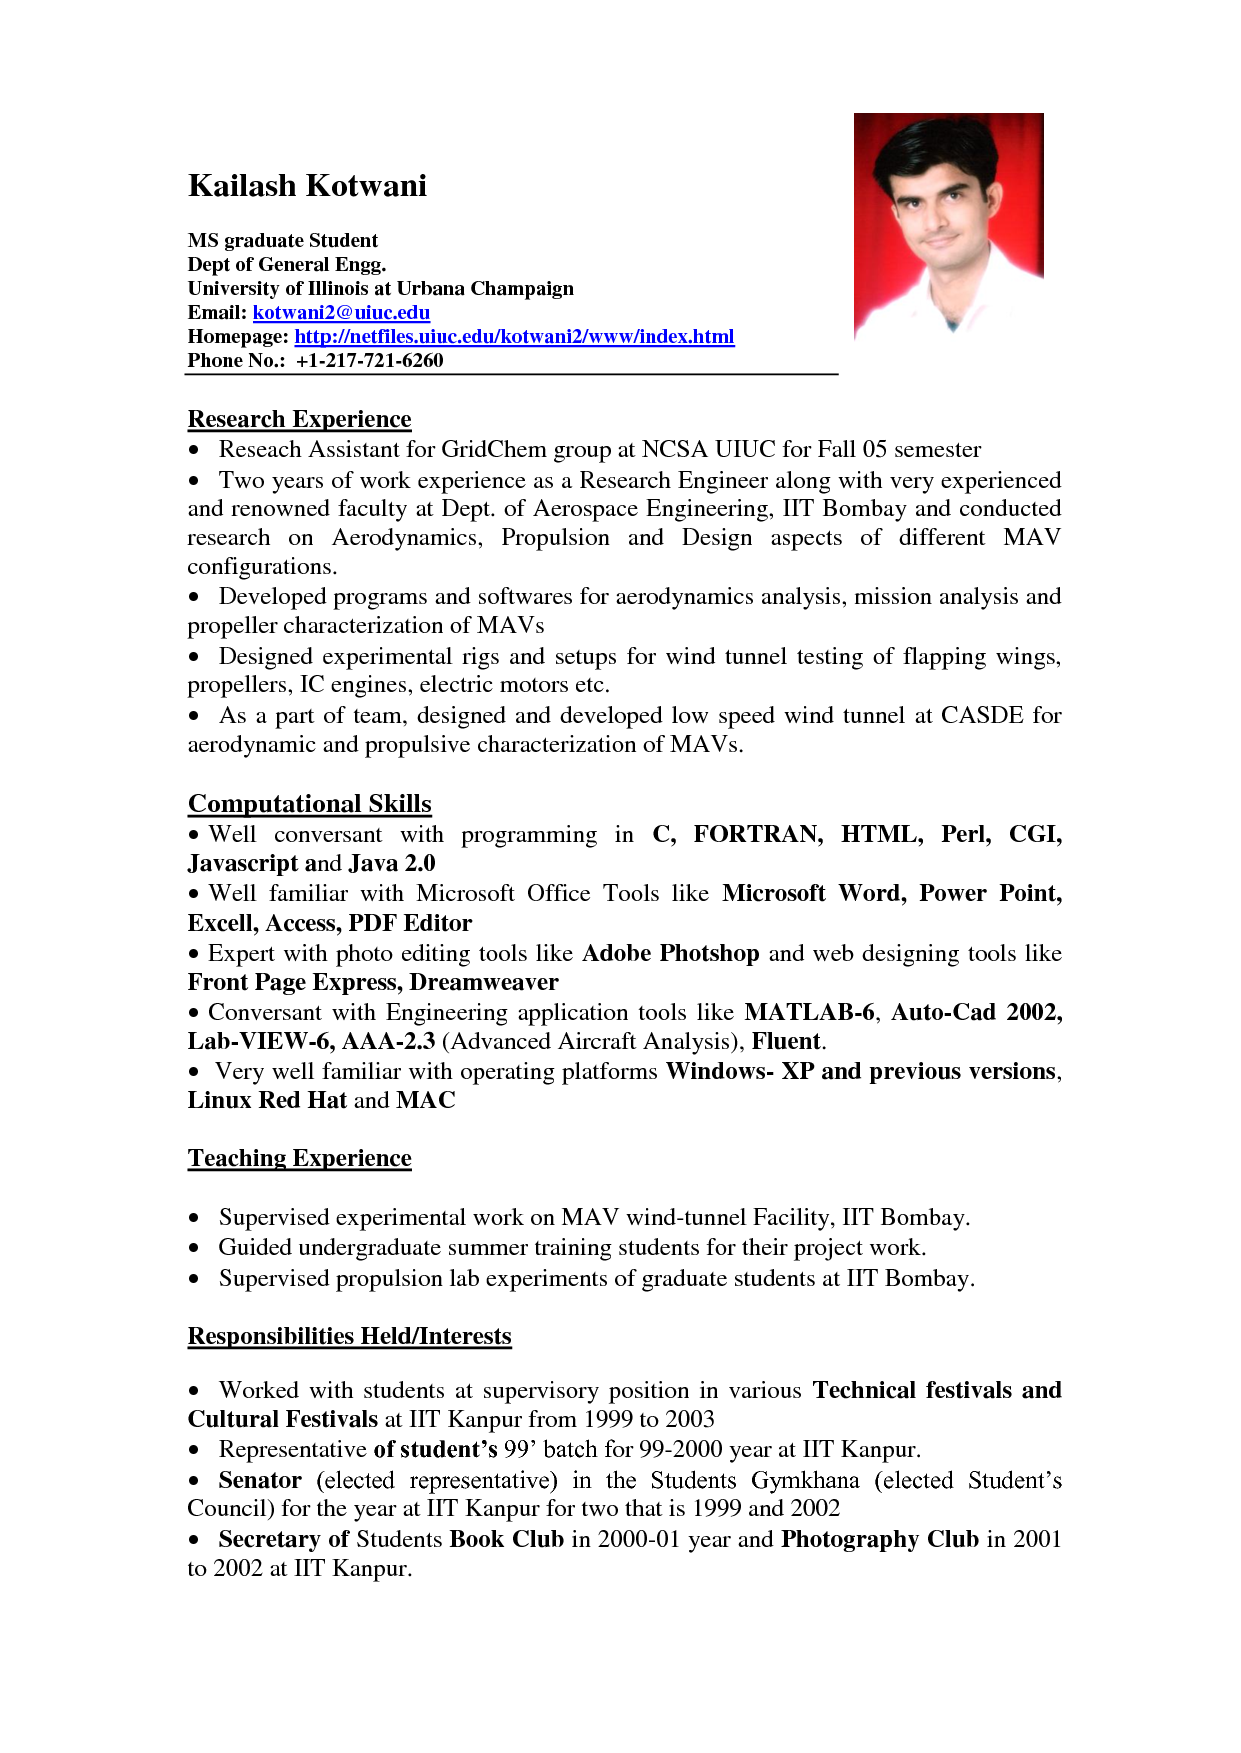 Delightful High School Student Resume Examples No Work Experience No Work Experience  Resume Content. How To Write A Resume Resume . Intended For Sample Resume With Work Experience